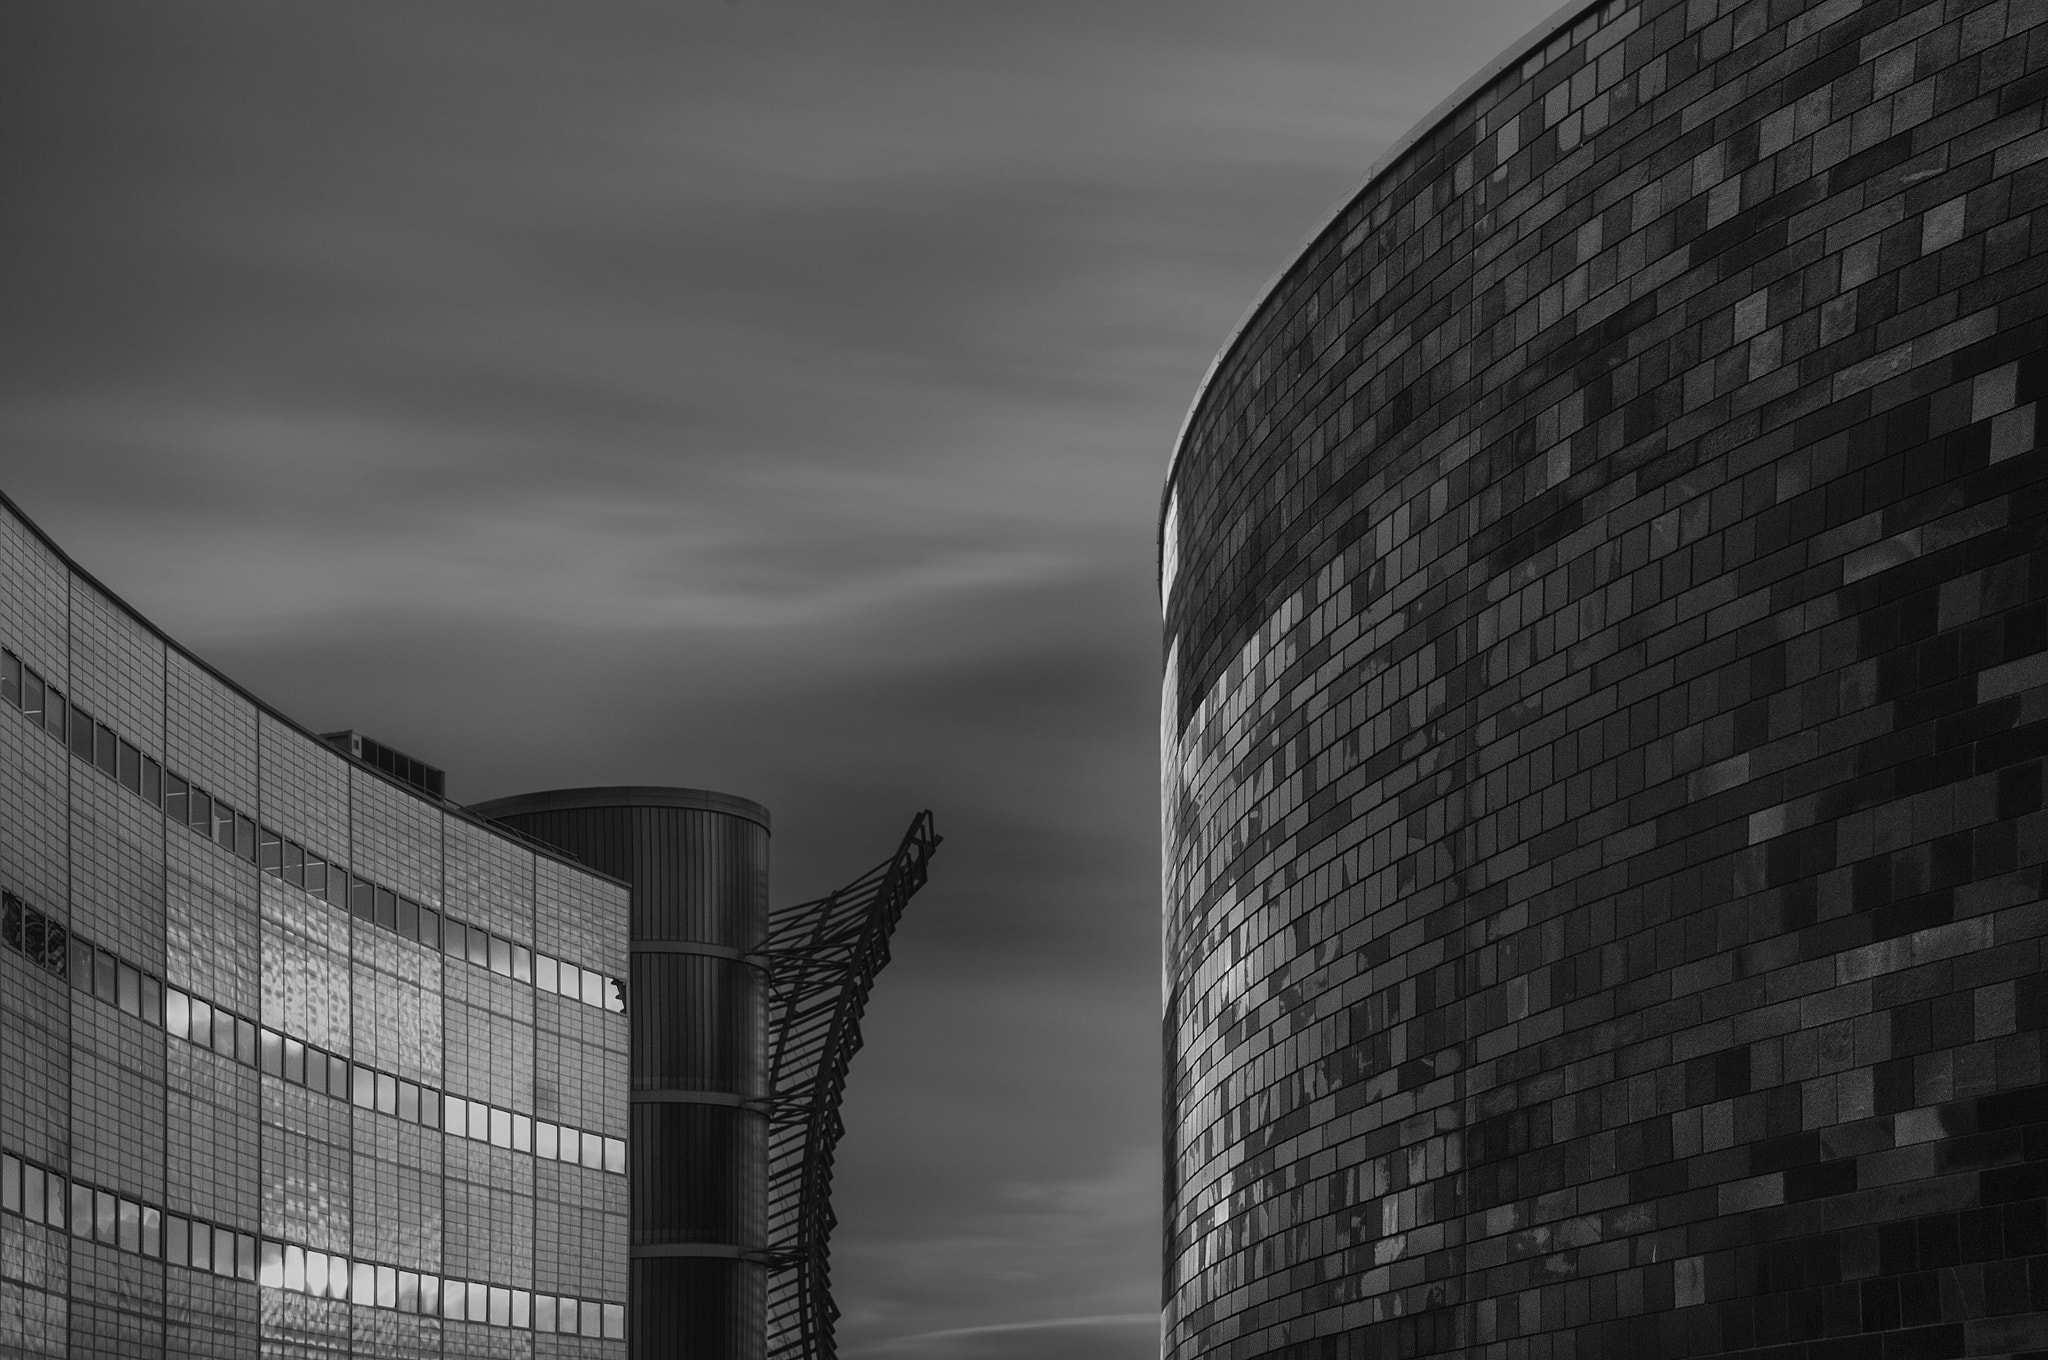 Photograph Curves by Phil Whittaker on 500px